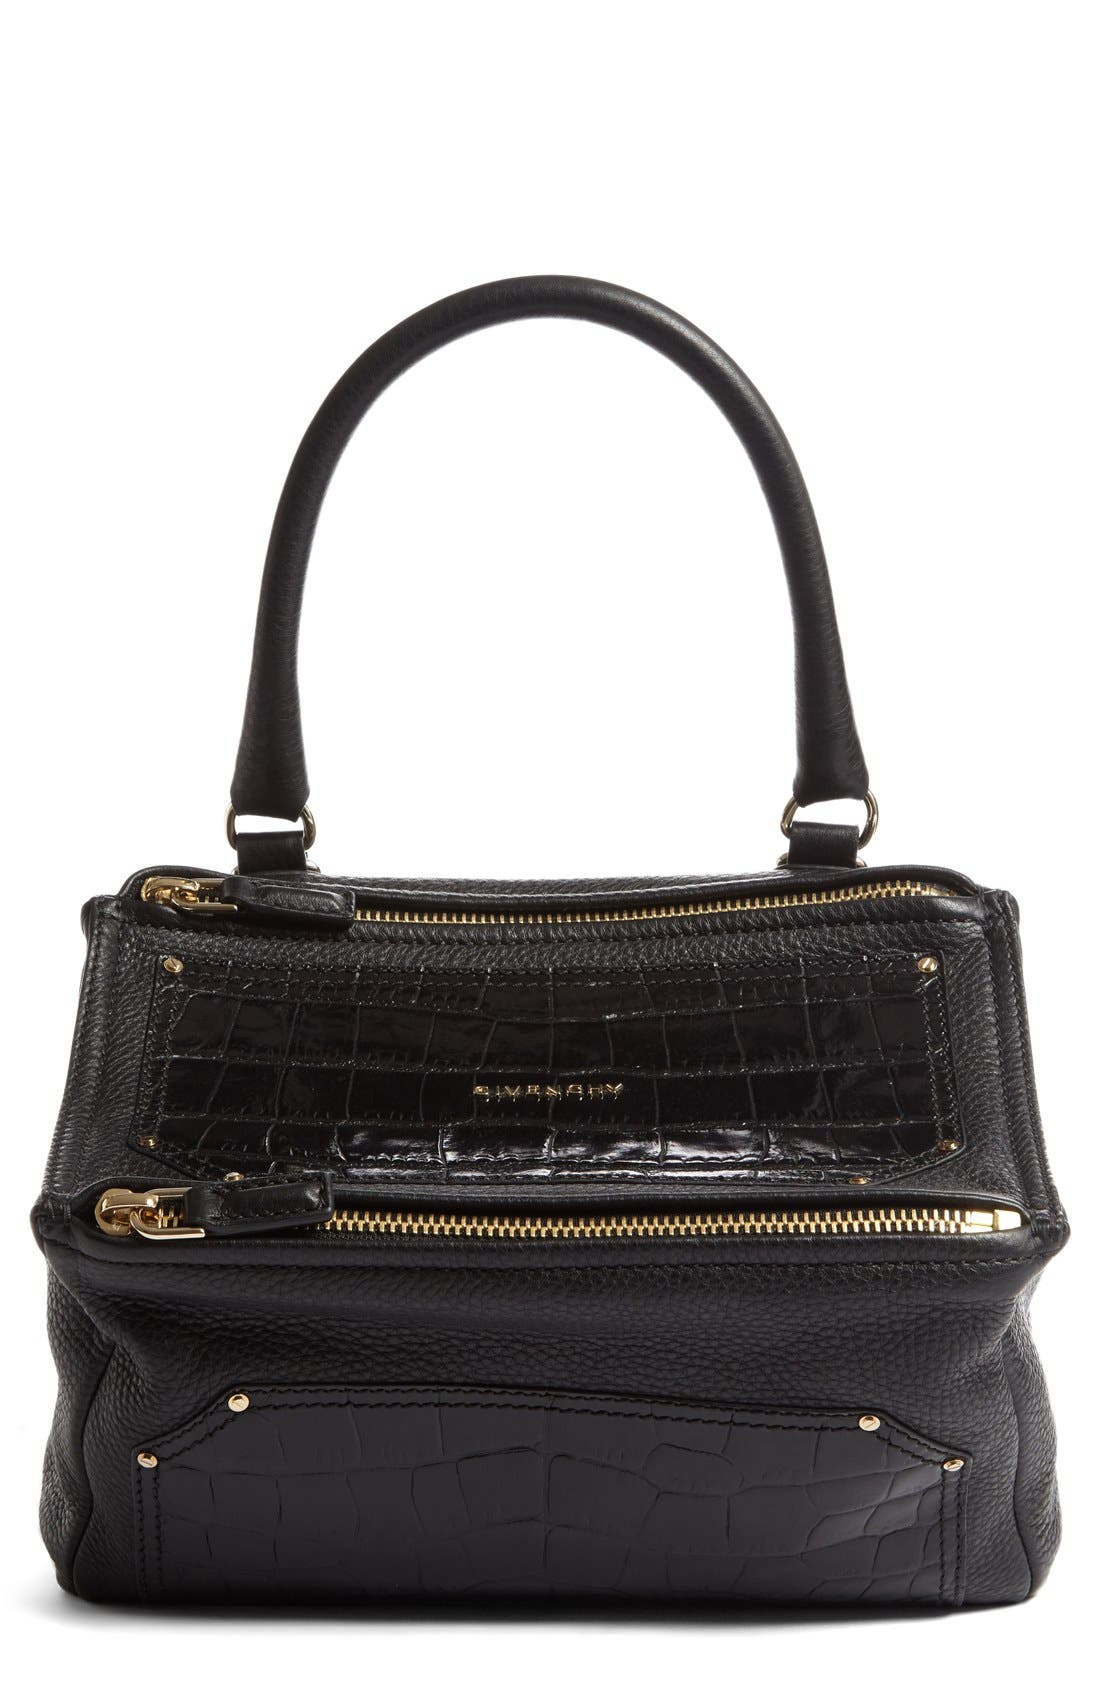 GIVENCHY Medium Pandora Croc Embossed Leather Satchel